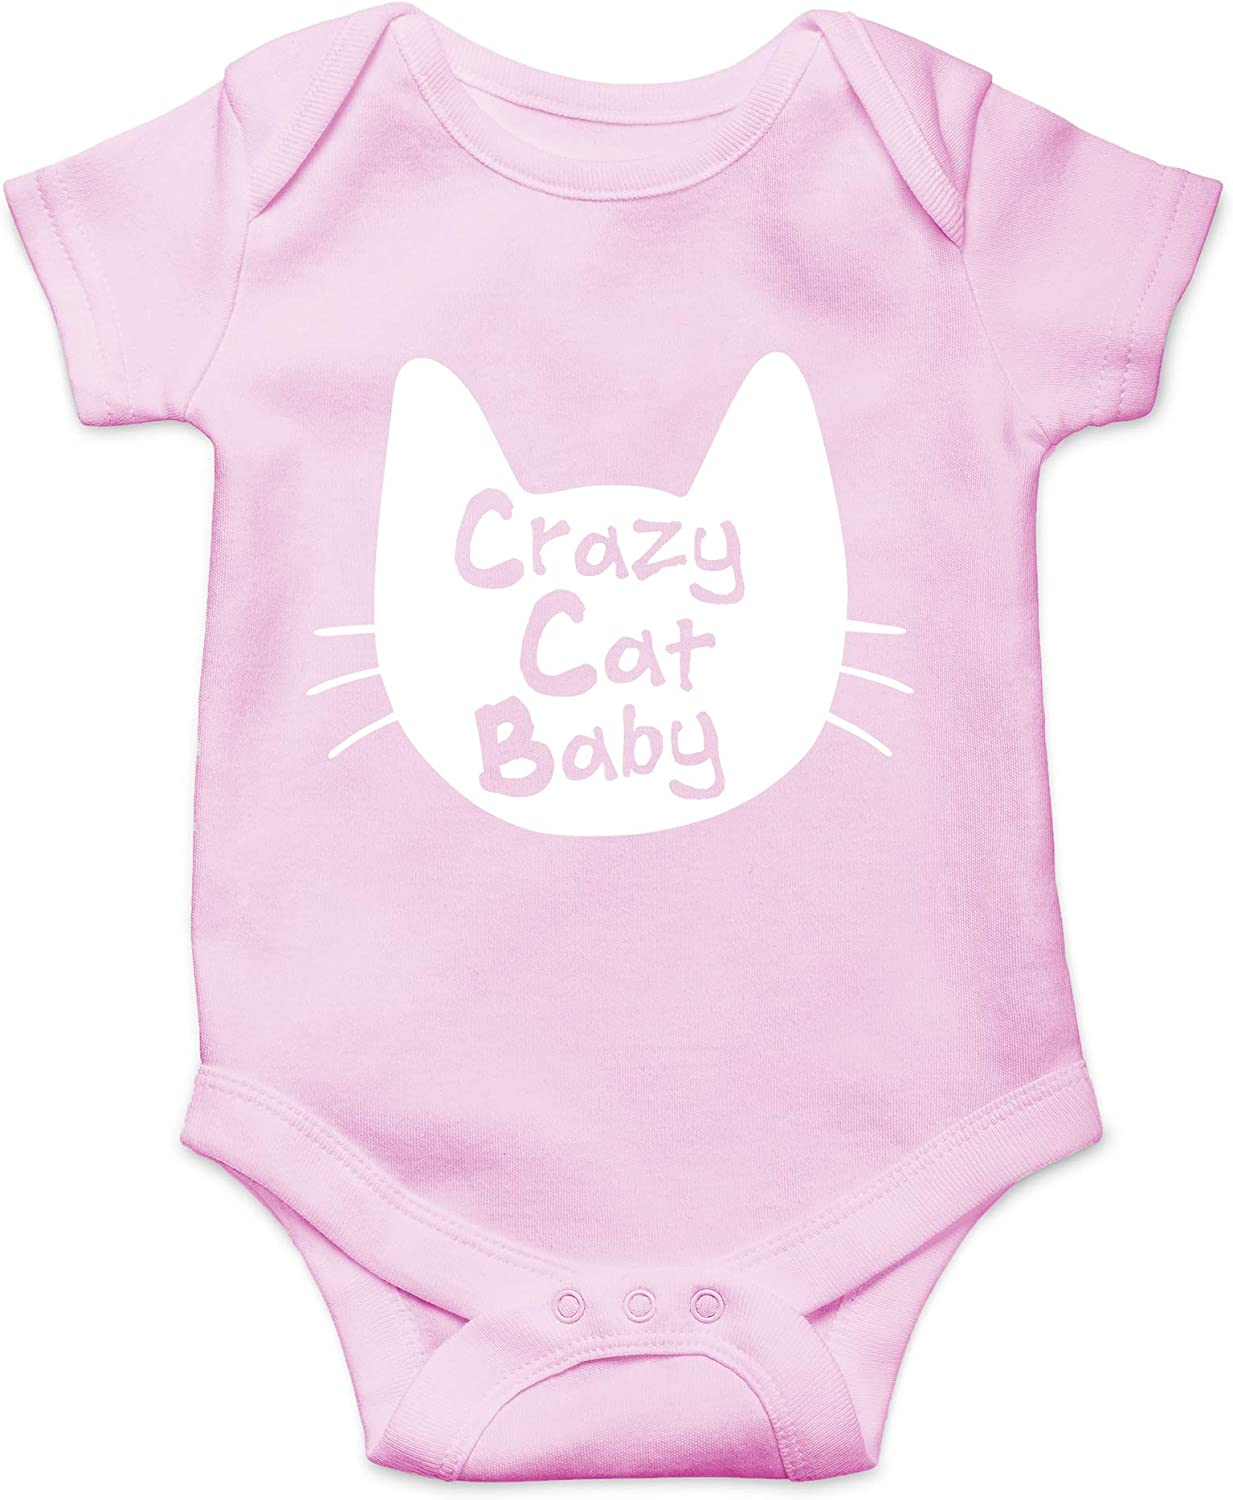 Crazy Cat Baby - My Overseas parallel import regular item Other One-Piece Cats Inf Are Cute Siblings Max 70% OFF